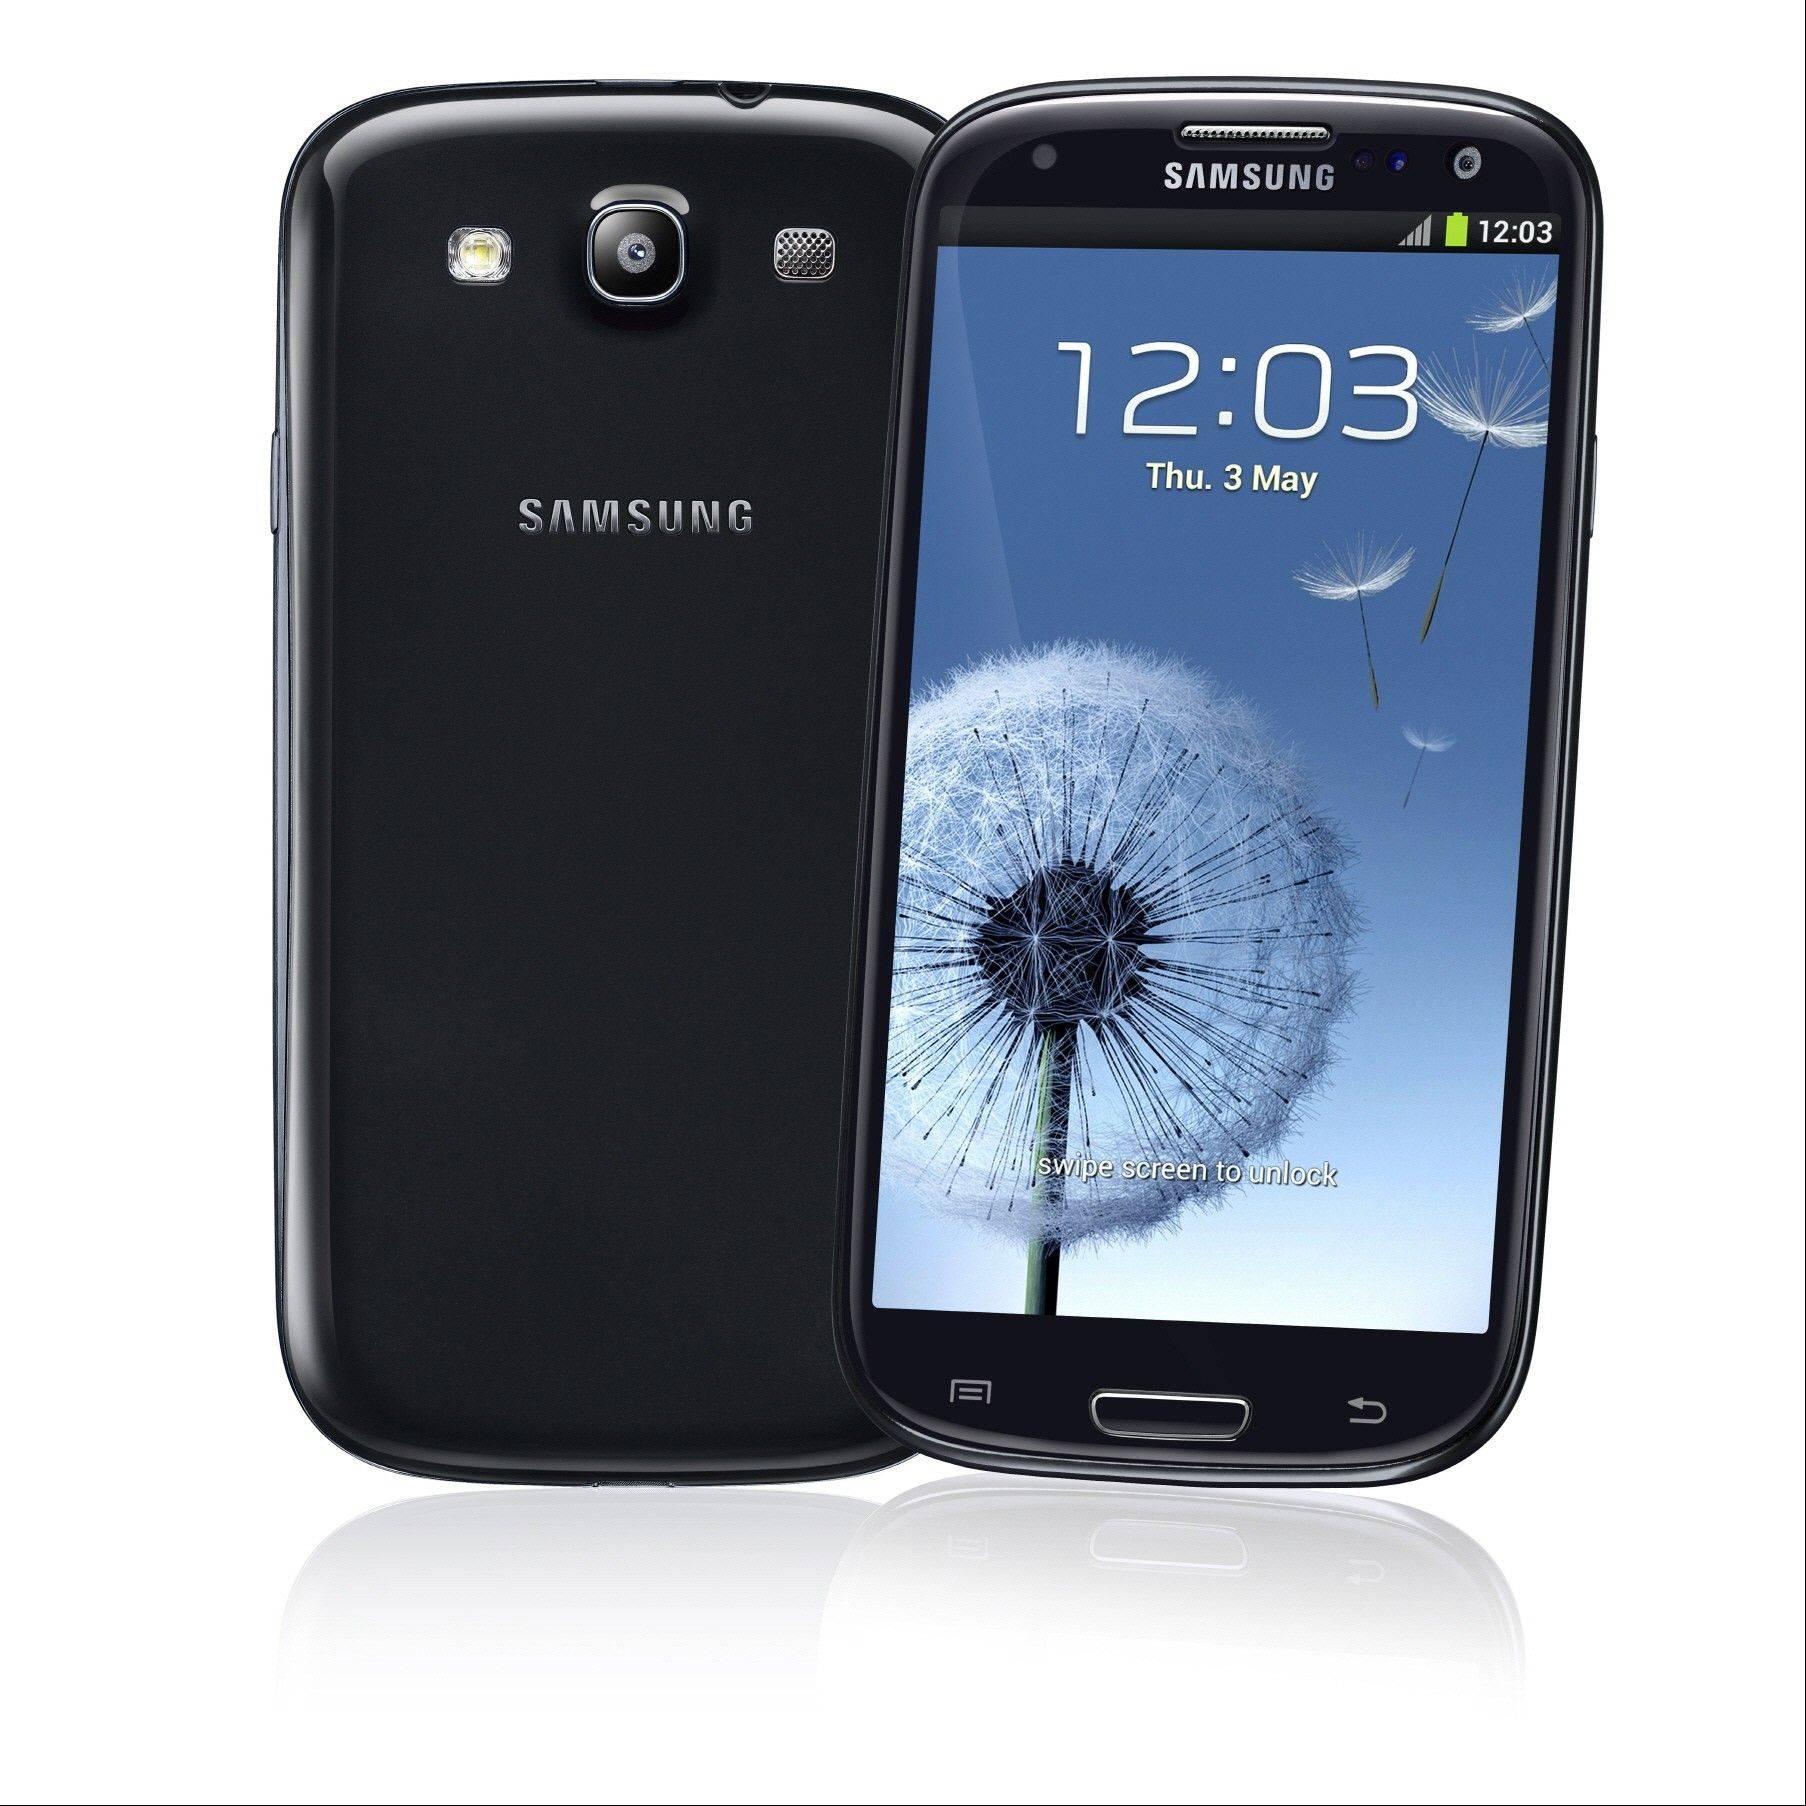 This undated image provided by Samsung shows the company's Samsung Galaxy S III. In the past few years, smartphones have gradually gotten bigger and tablet computers have gotten smaller. So it should come as no surprise that devices in between are starting to emerge. These devices, informally known as phablets, are better described as giant phones than baby tablets, as they can be used for phone calls. And for now, they are closer in size to regular phones, with screens running 5 inches or more diagonally.